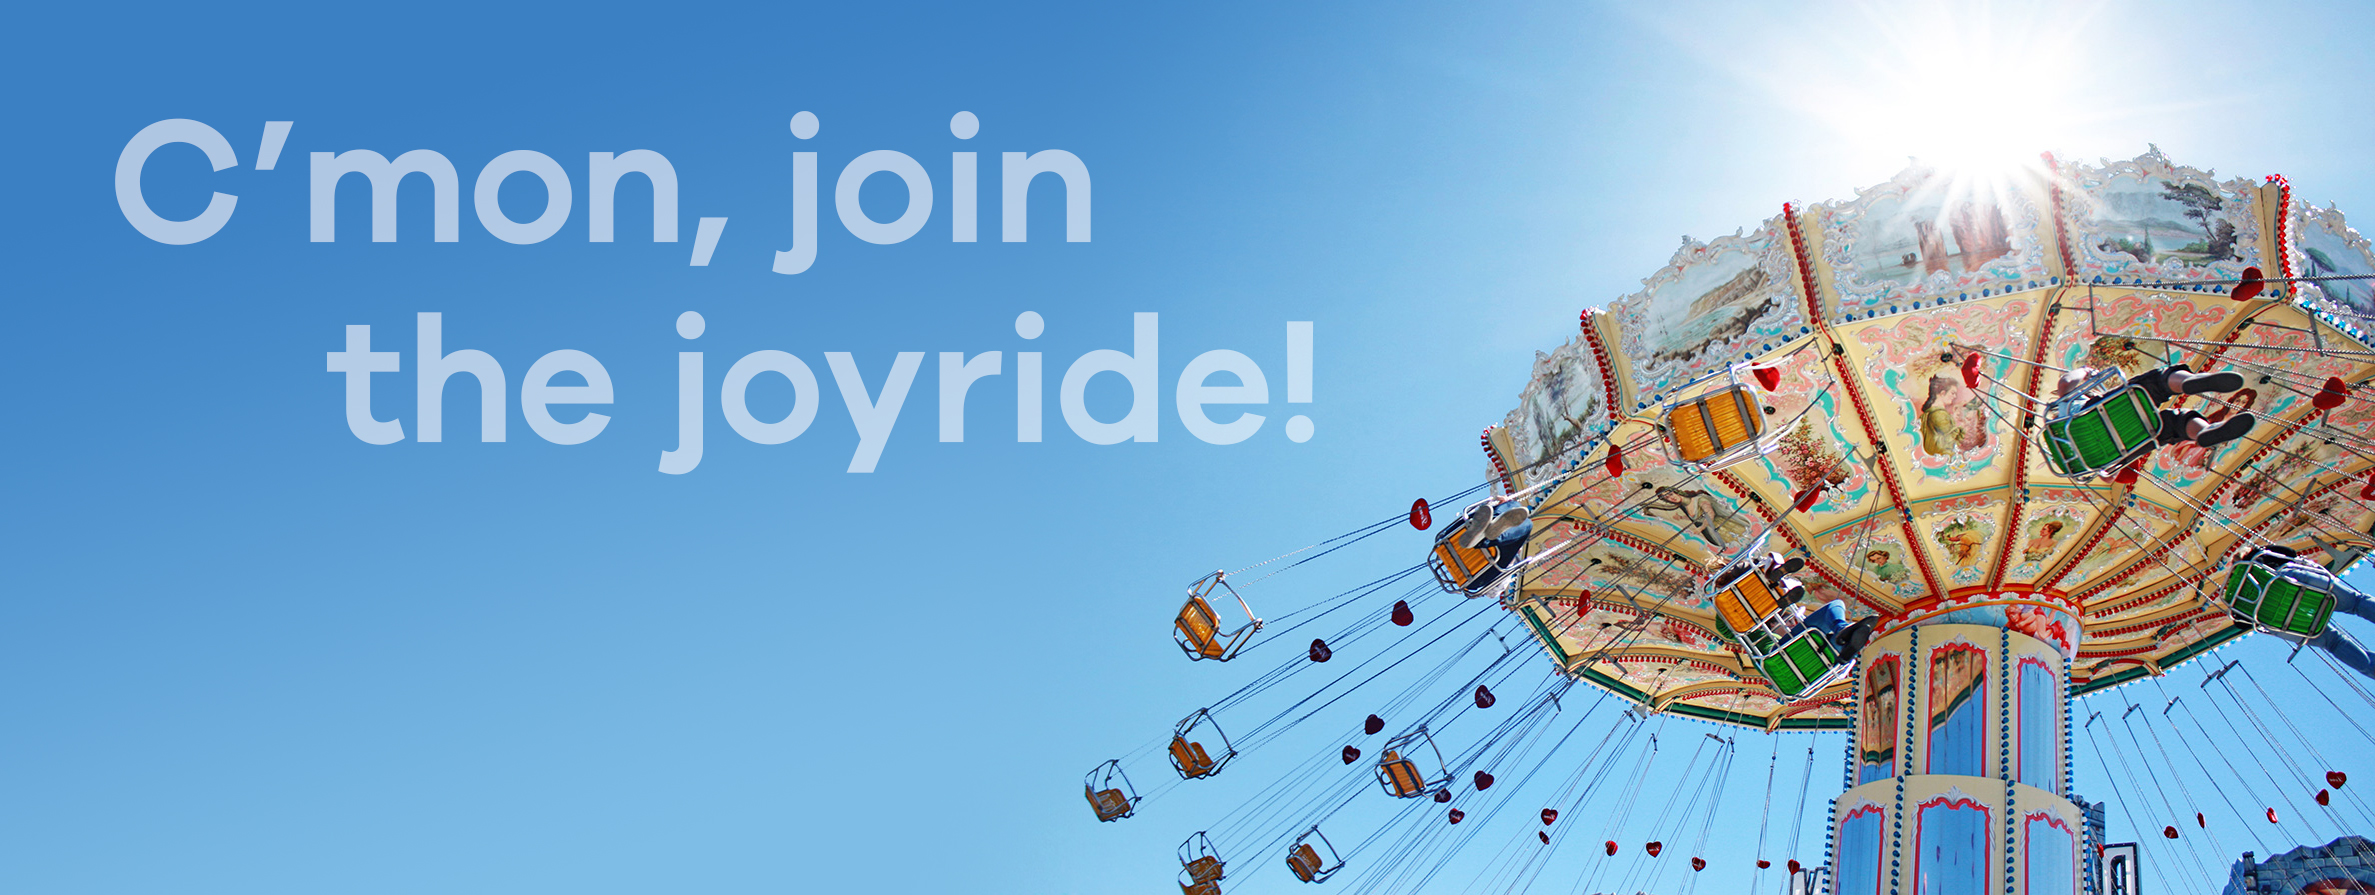 join the joyride